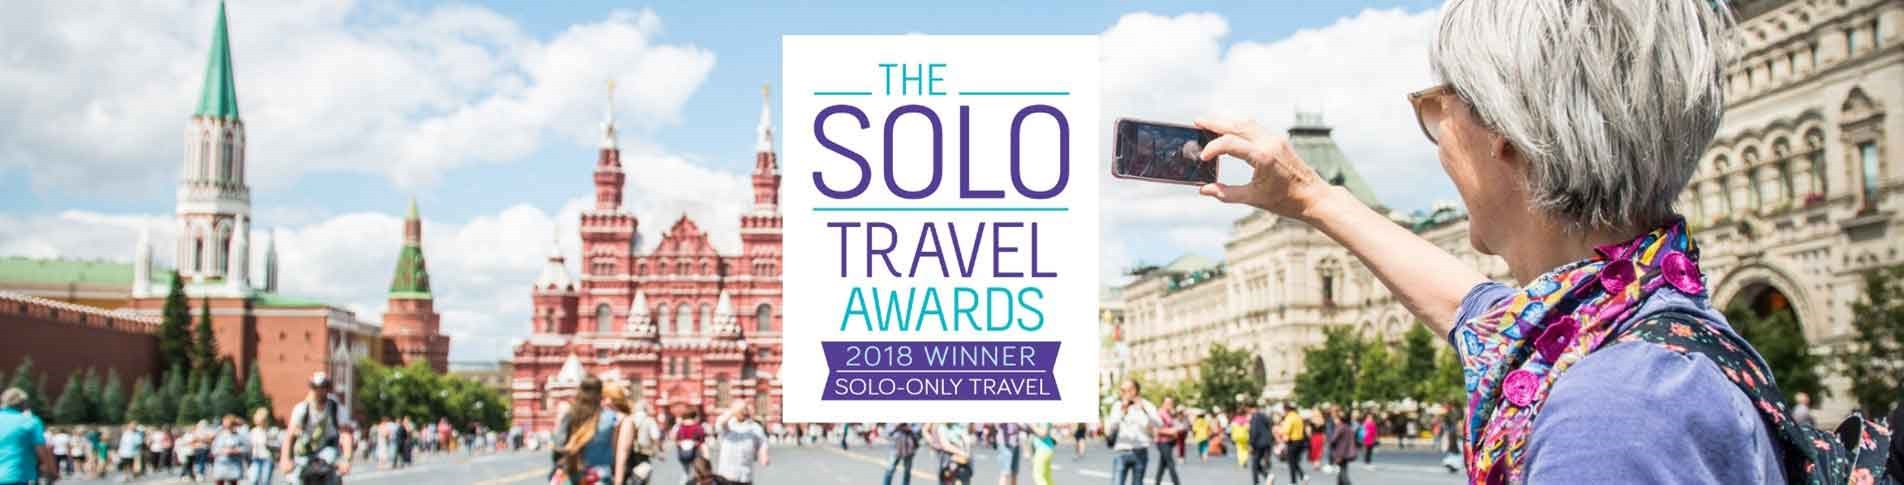 The Solo Travel Awards 2018